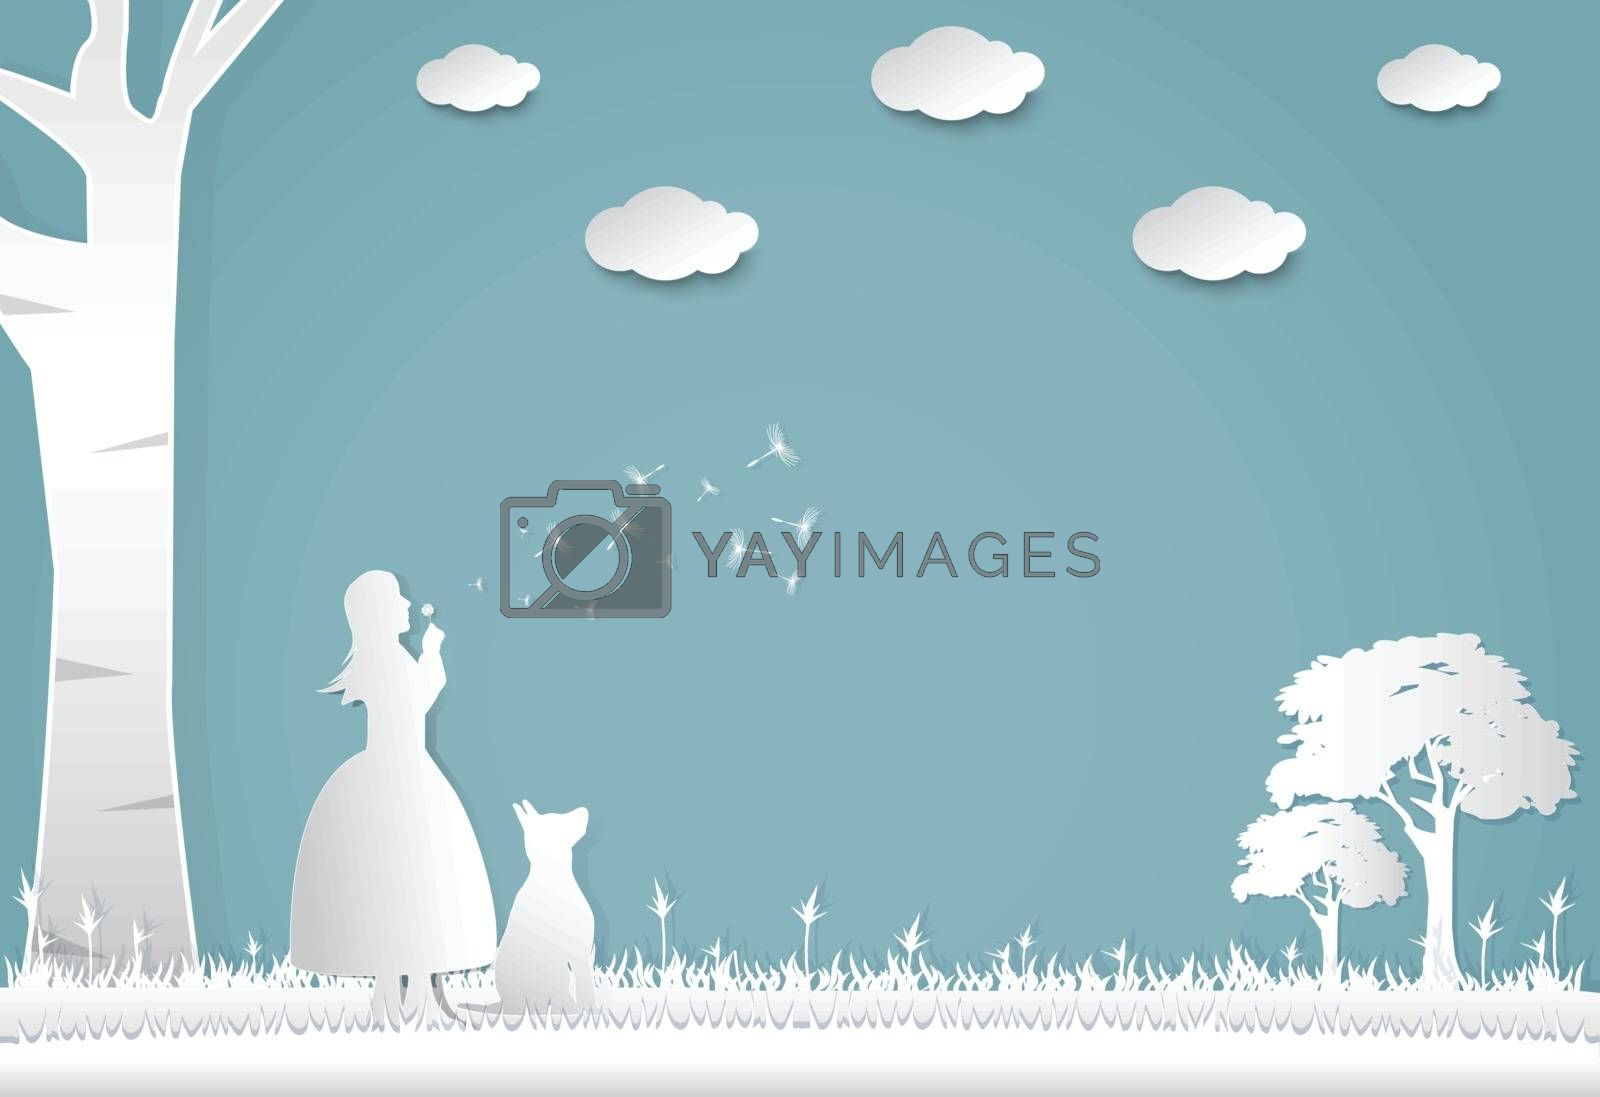 Girl blowing dandelion in meadow, nature background, paper art style illustration